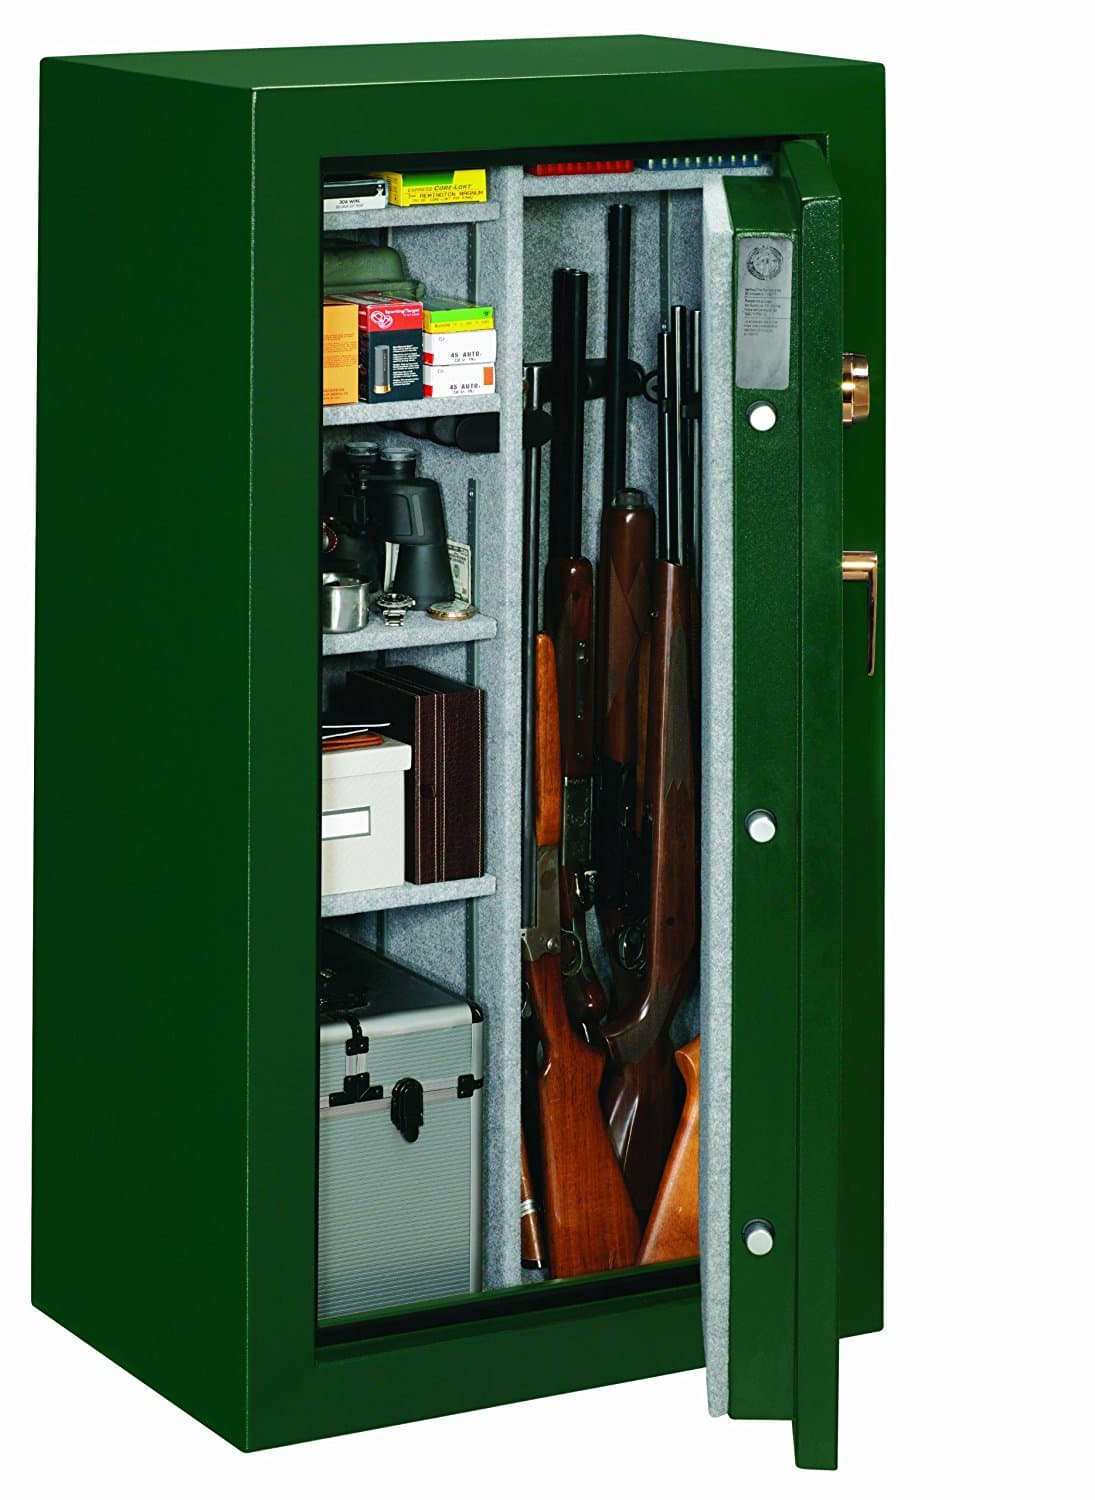 Best Gun Safe Under 1000 Dollars Top 8 Picks Of 2019